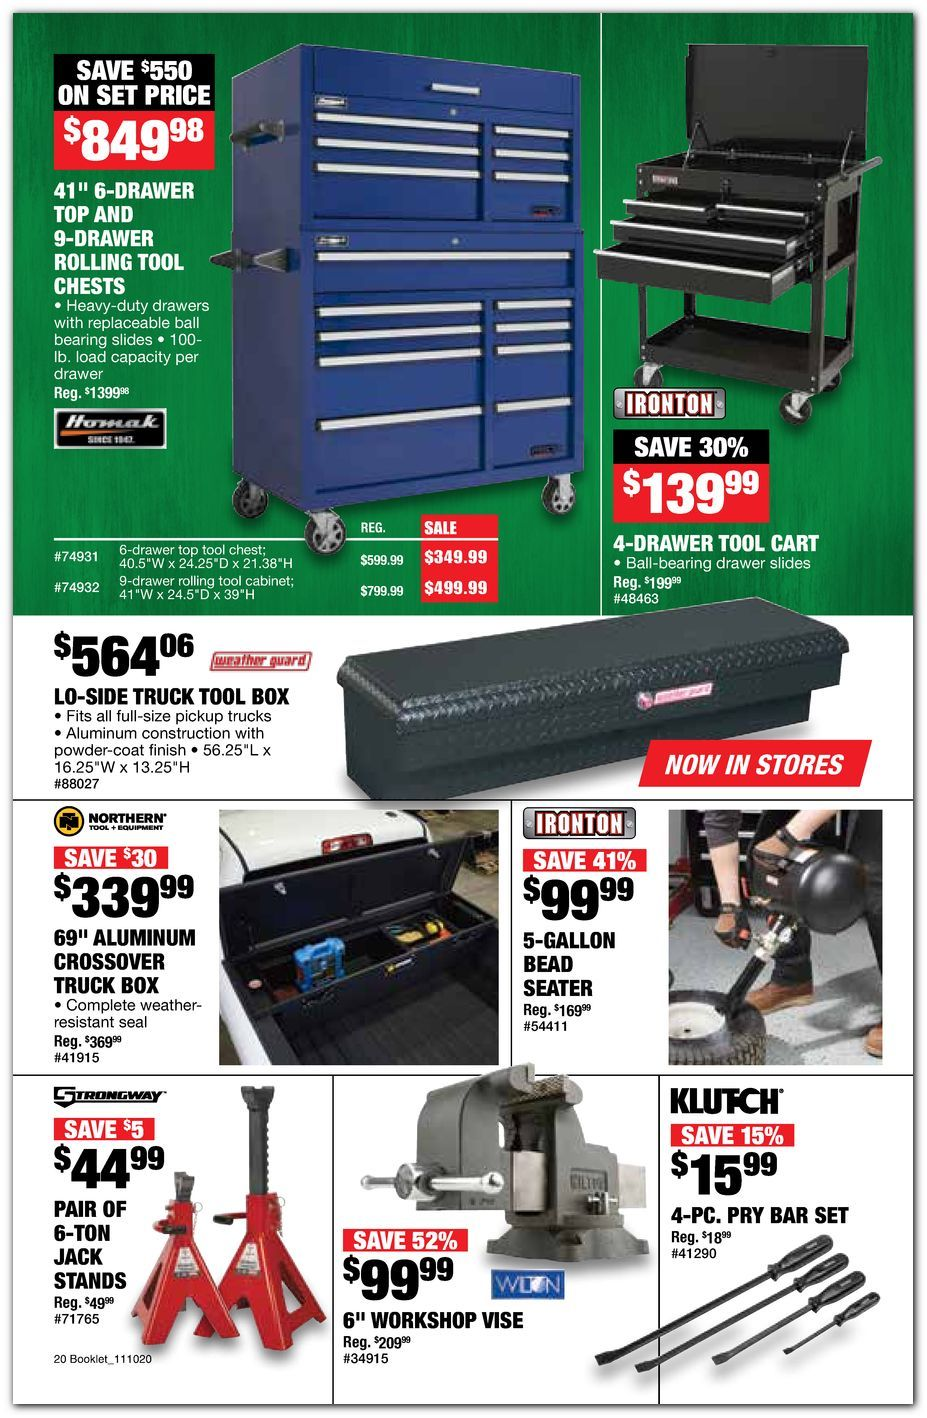 Northern Tool Black Friday Ads